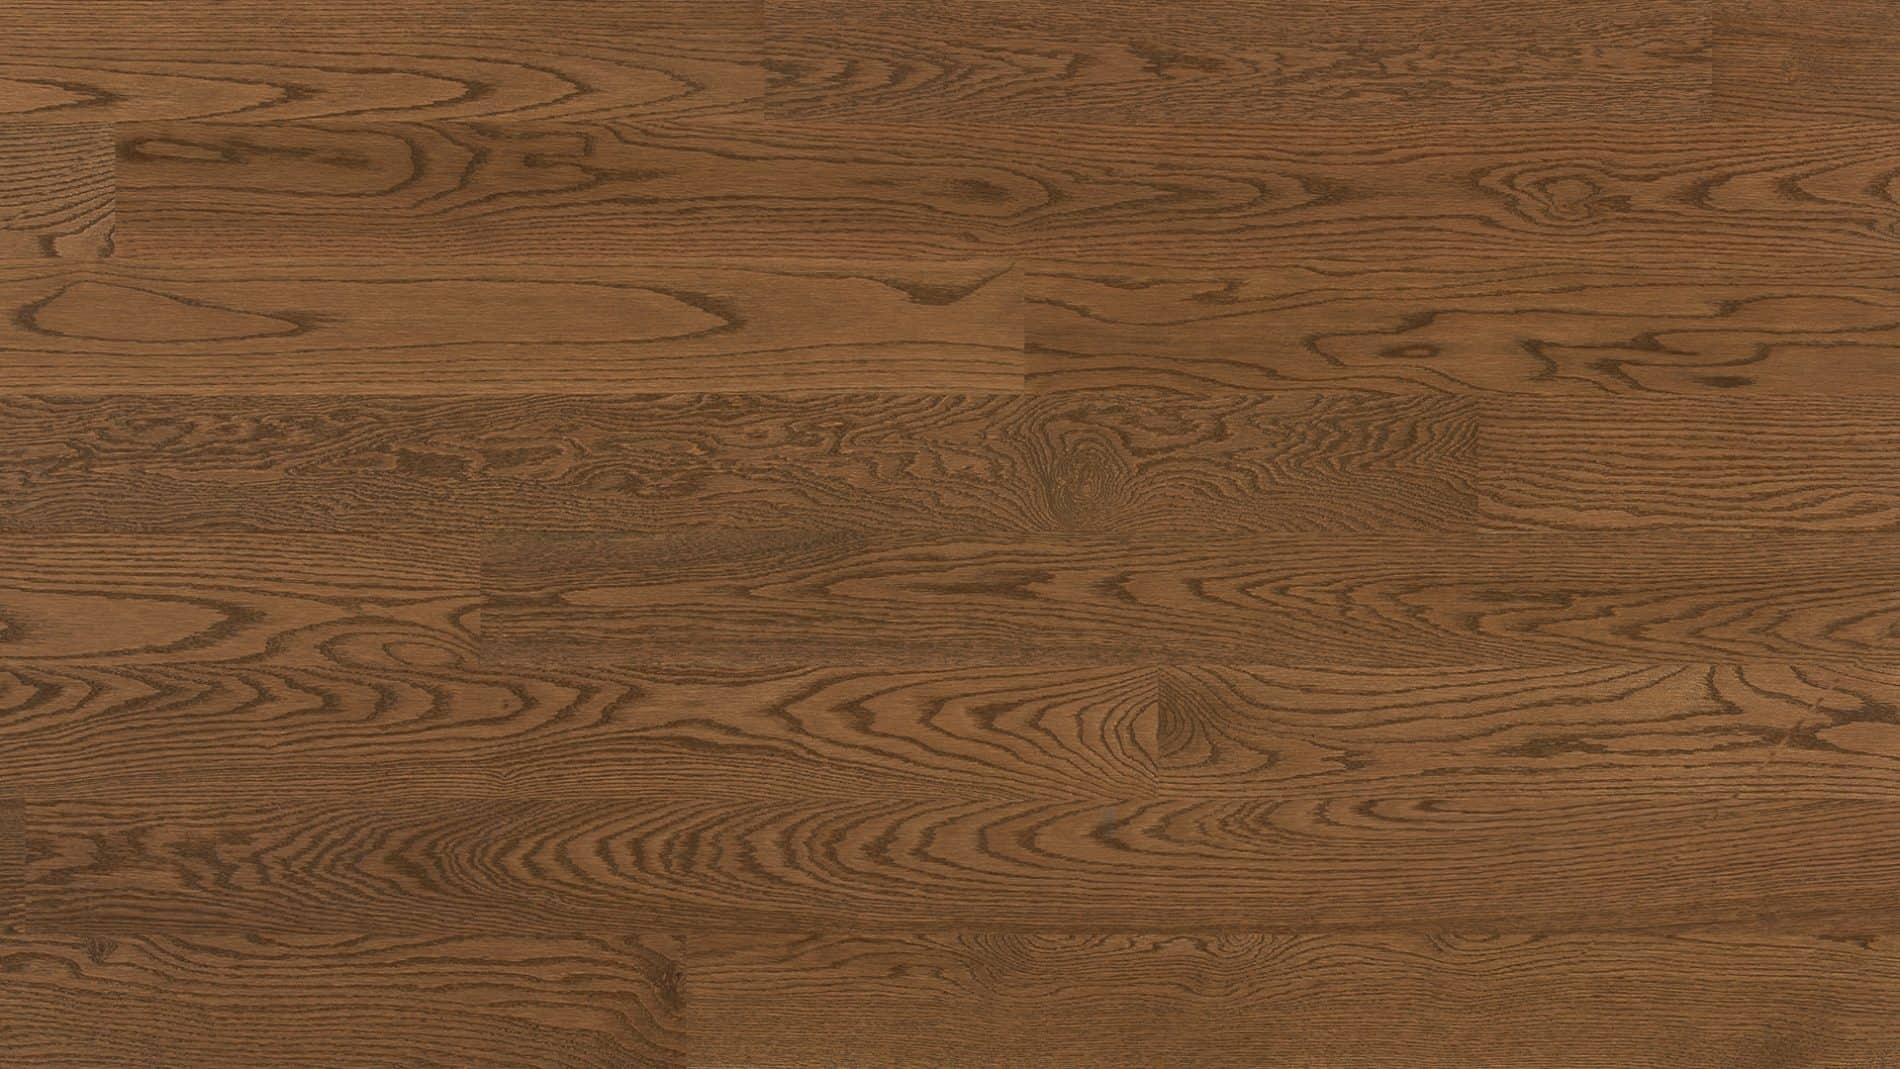 Hardwood floor | Red oak wire brushed epicea